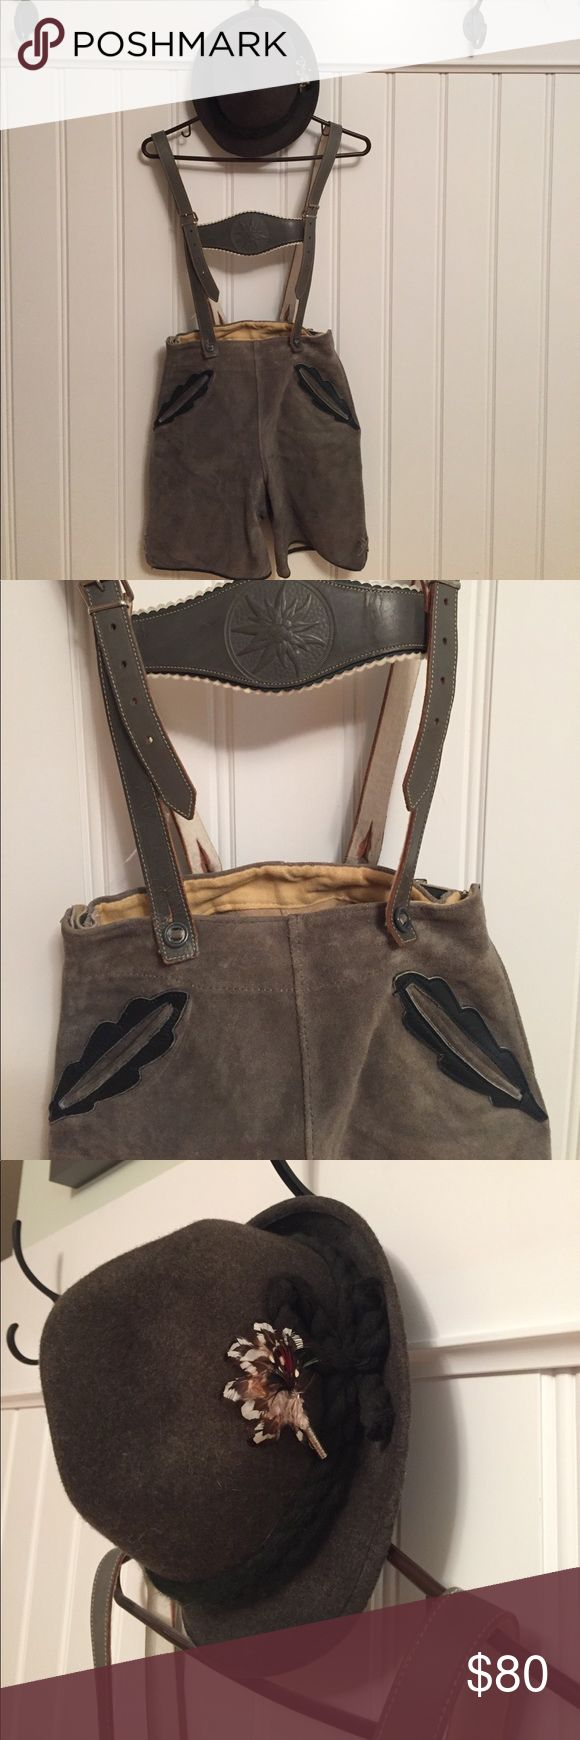 Authentic Austrian lederhosen and hat Loden-green leader lederhosen; purchased in Austria about 60 years ago. Fully lined and adjustable. No size given but fits someone who is approx size 0-4. Hat is newer but also authentic; wool with feather decoration. Other